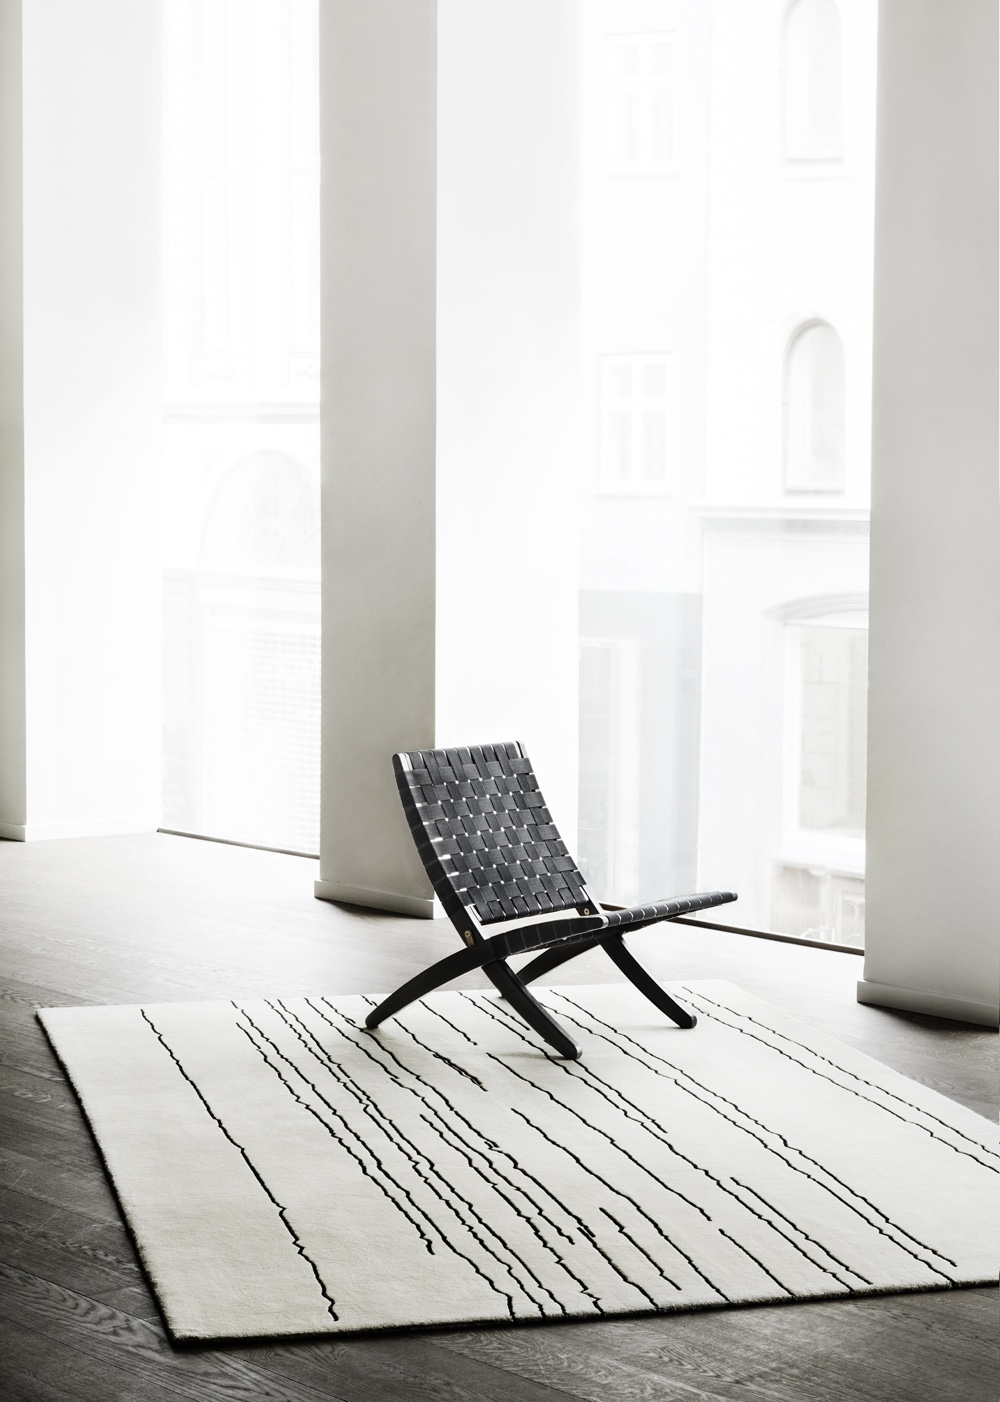 Woodlines rug designed by artist Naja Utzon Popov for Carl Hansen & Søn. Image courtesy of Carl Hansen & Søn.